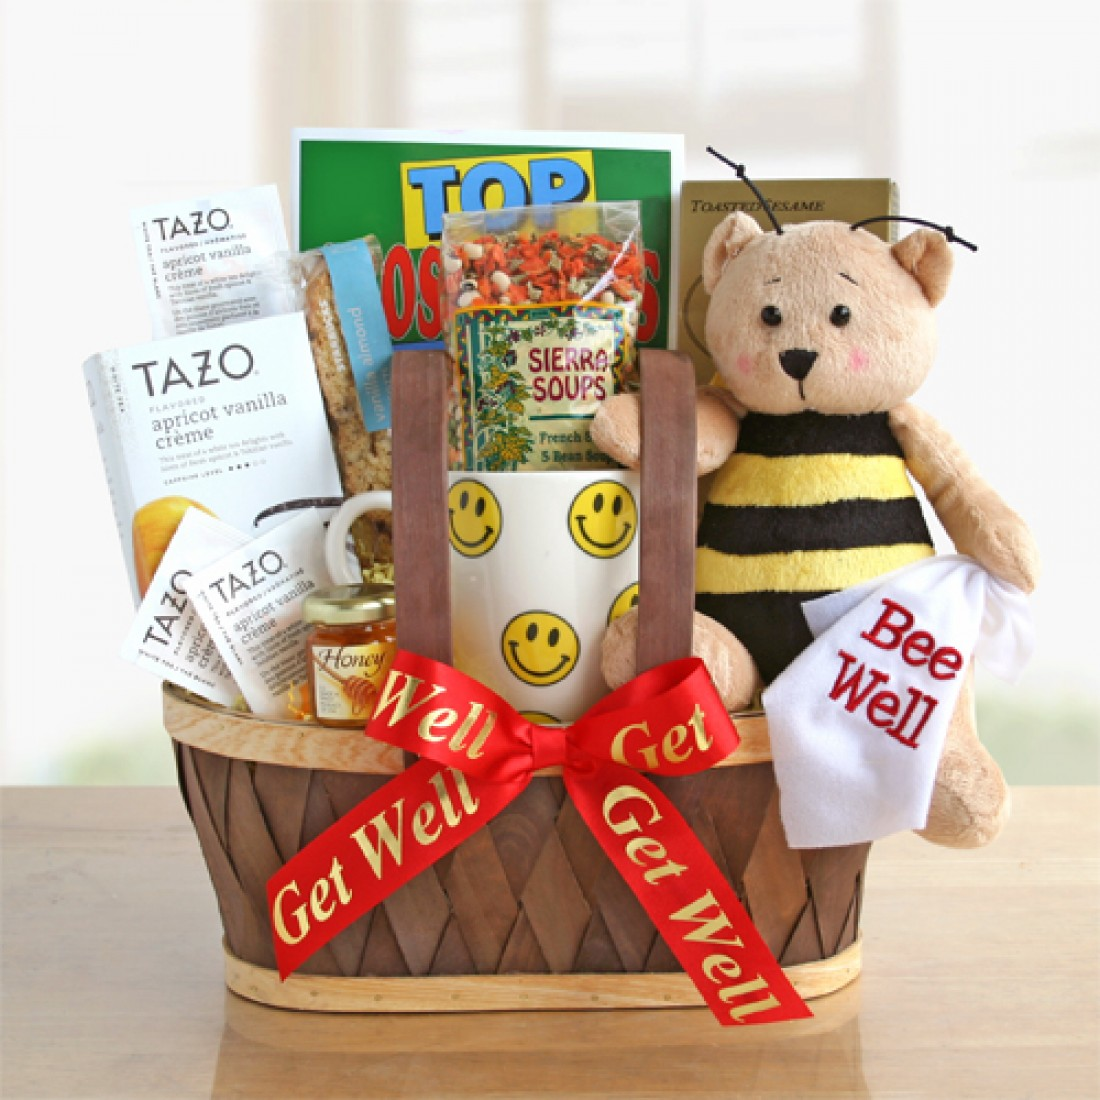 Bee well get gift baskets free shipping